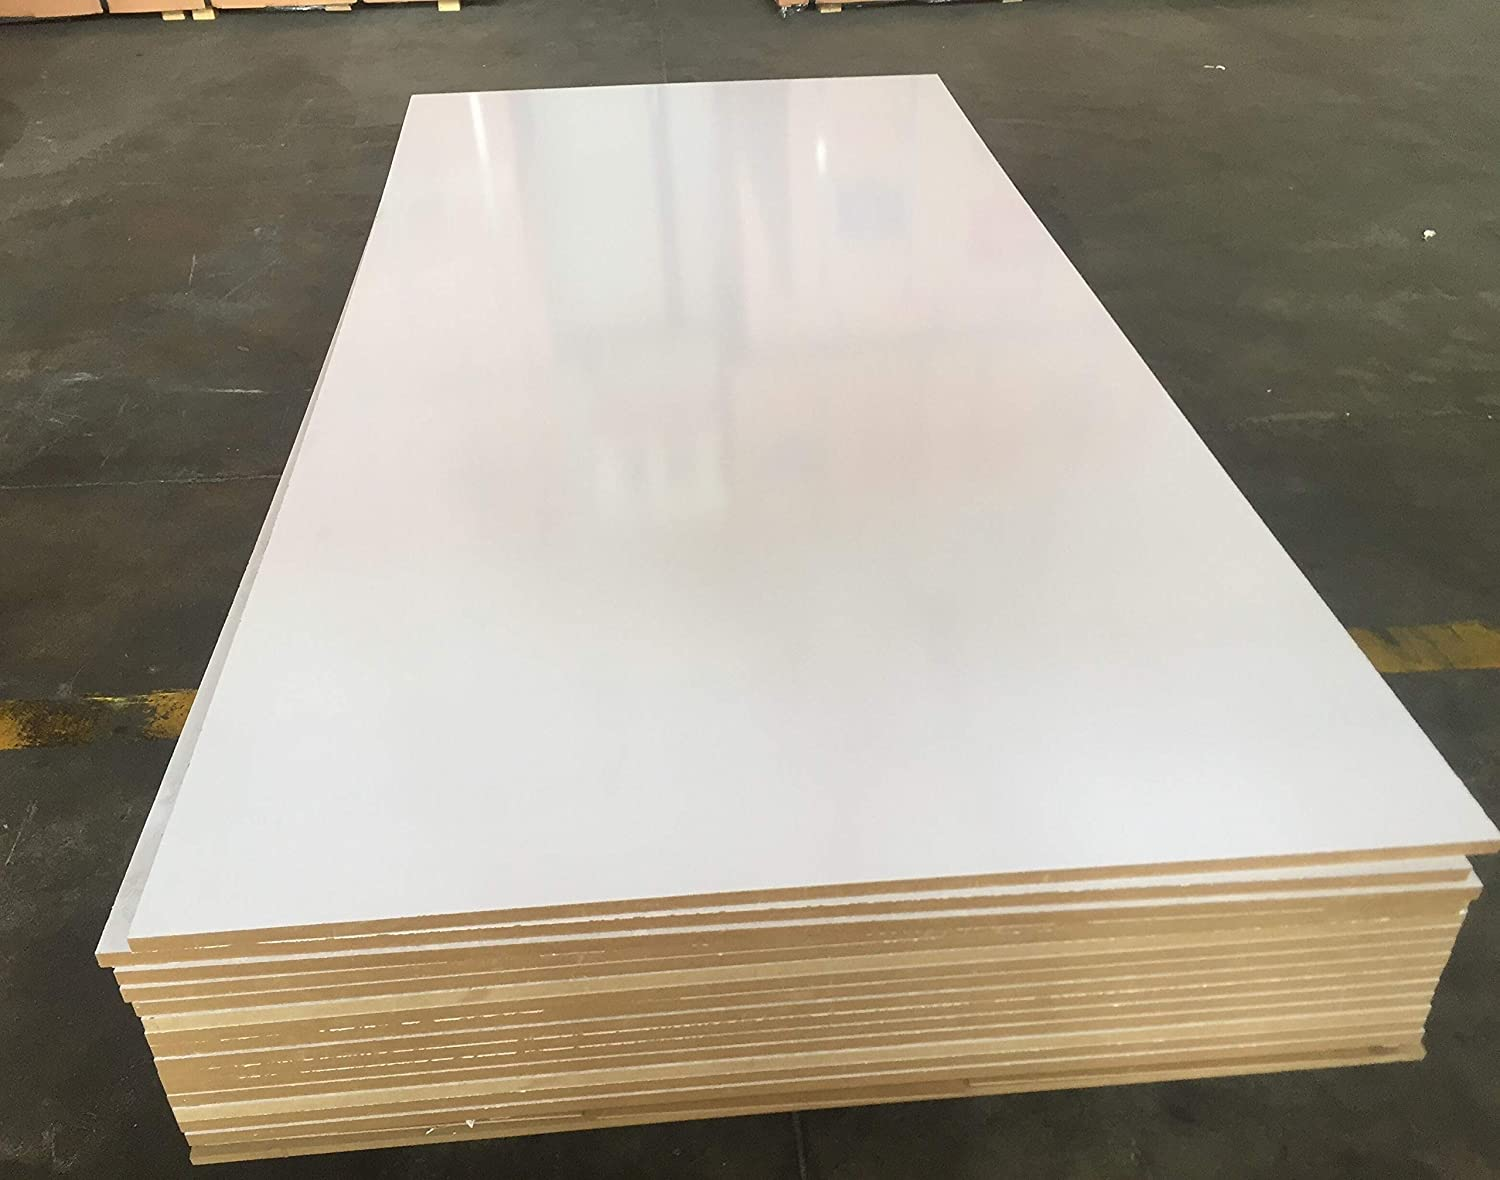 8x4ft 2440mm x 1220mm White Melamine Board Thickness: 12mm